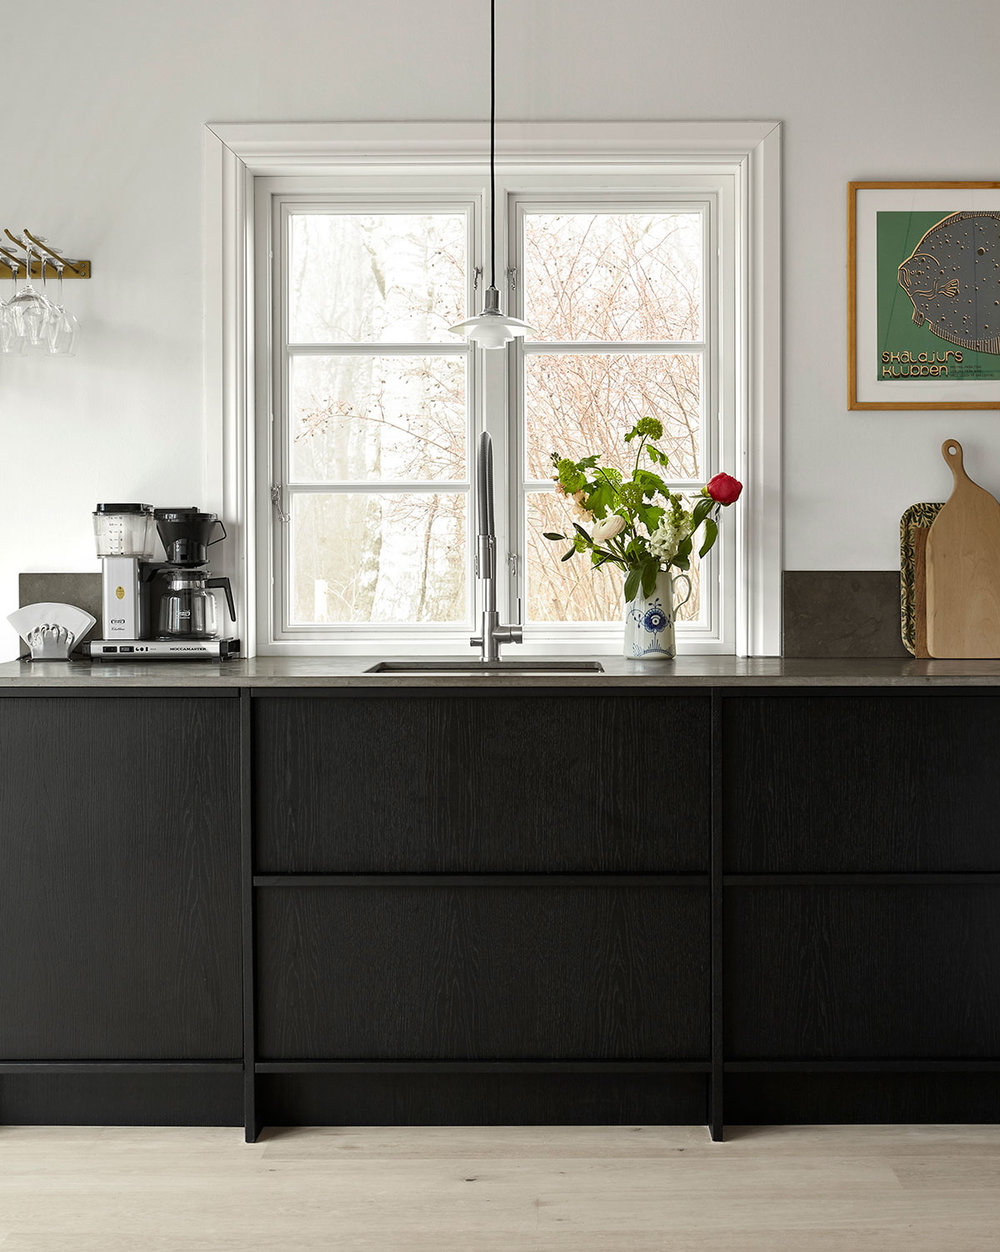 Johanna Bradford kitchen, black oak kitchen inspiration